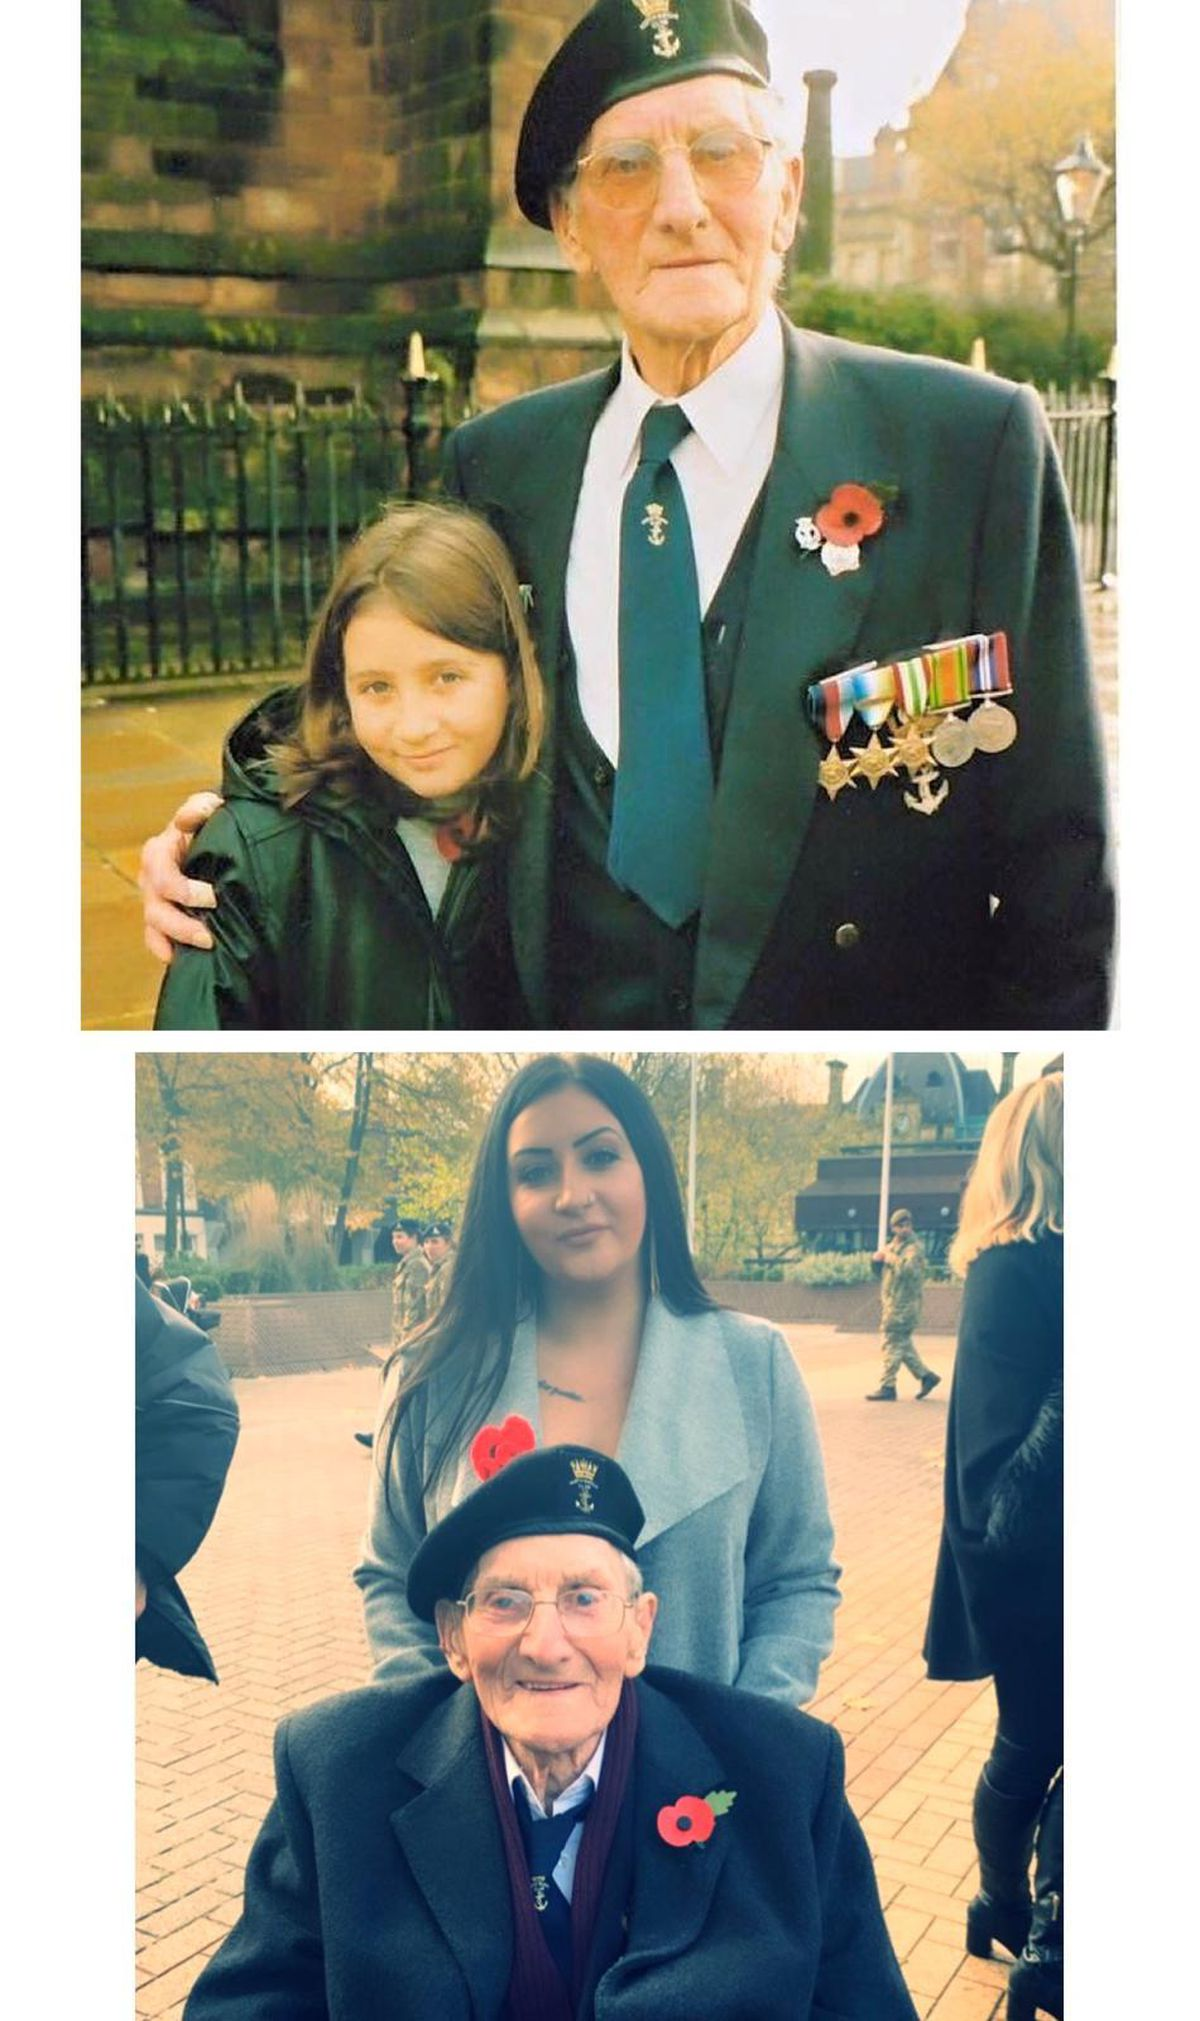 Zoe with Harry, at the Wolverhampton Civic Square Remembrance Day service, 20 years apart. In the top image she is seven, and bottom, 27